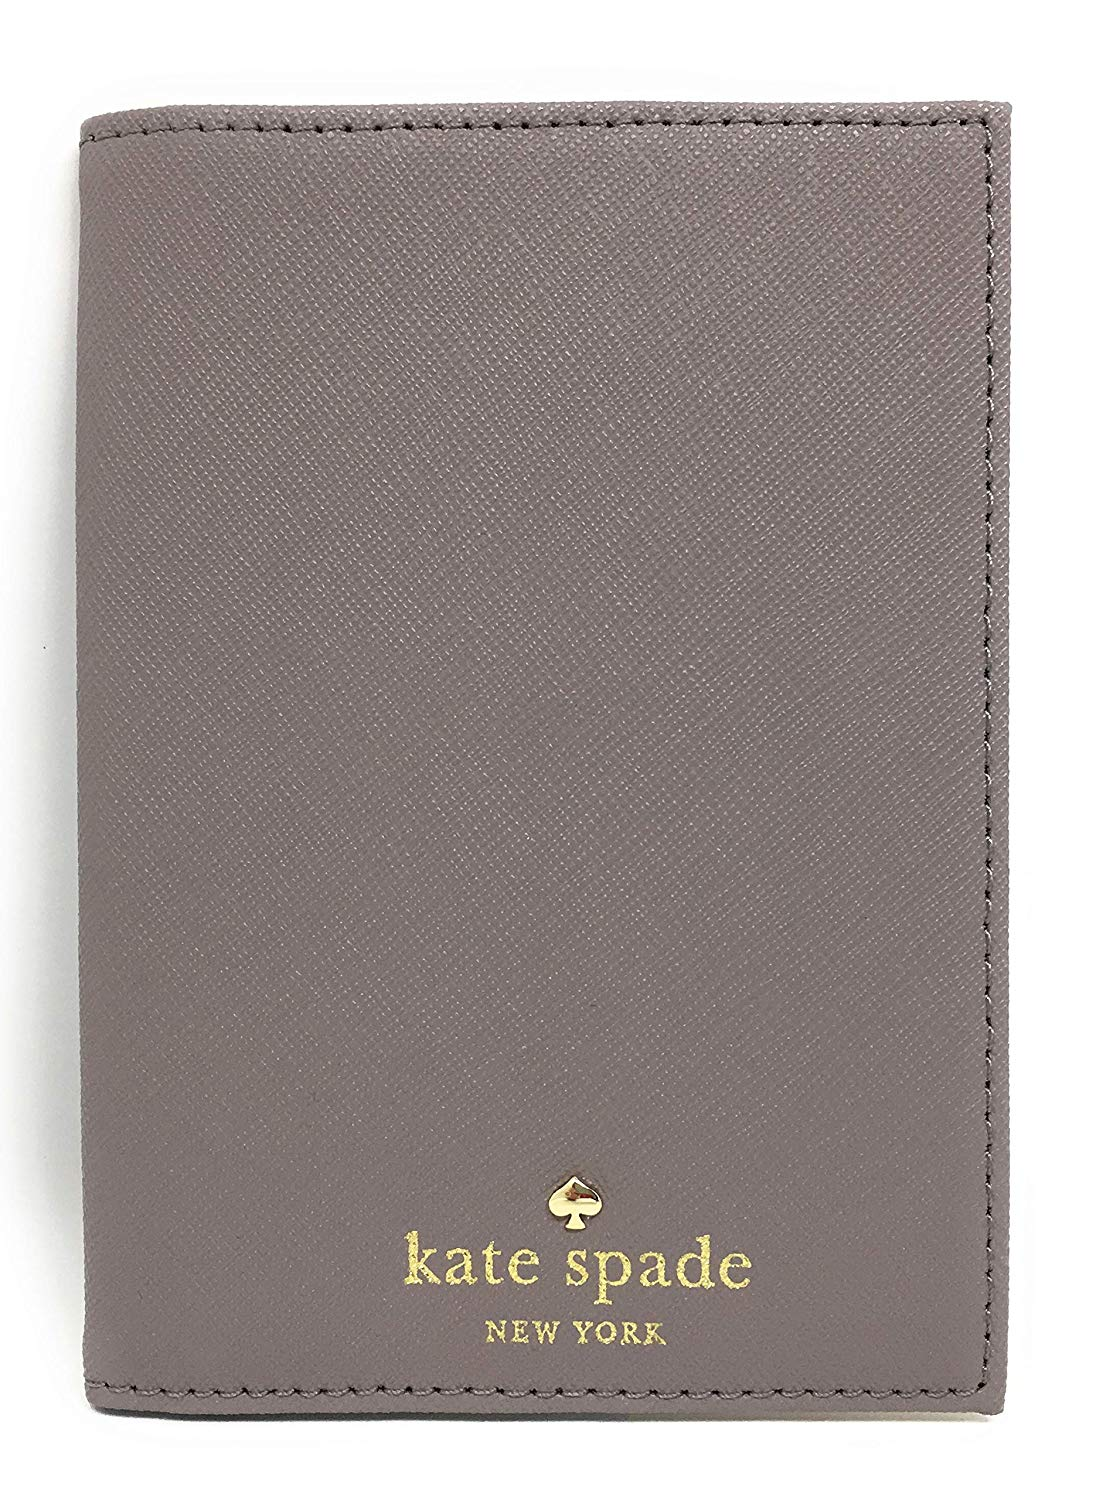 Kate Spade New York Mikas Pond Passport Holder